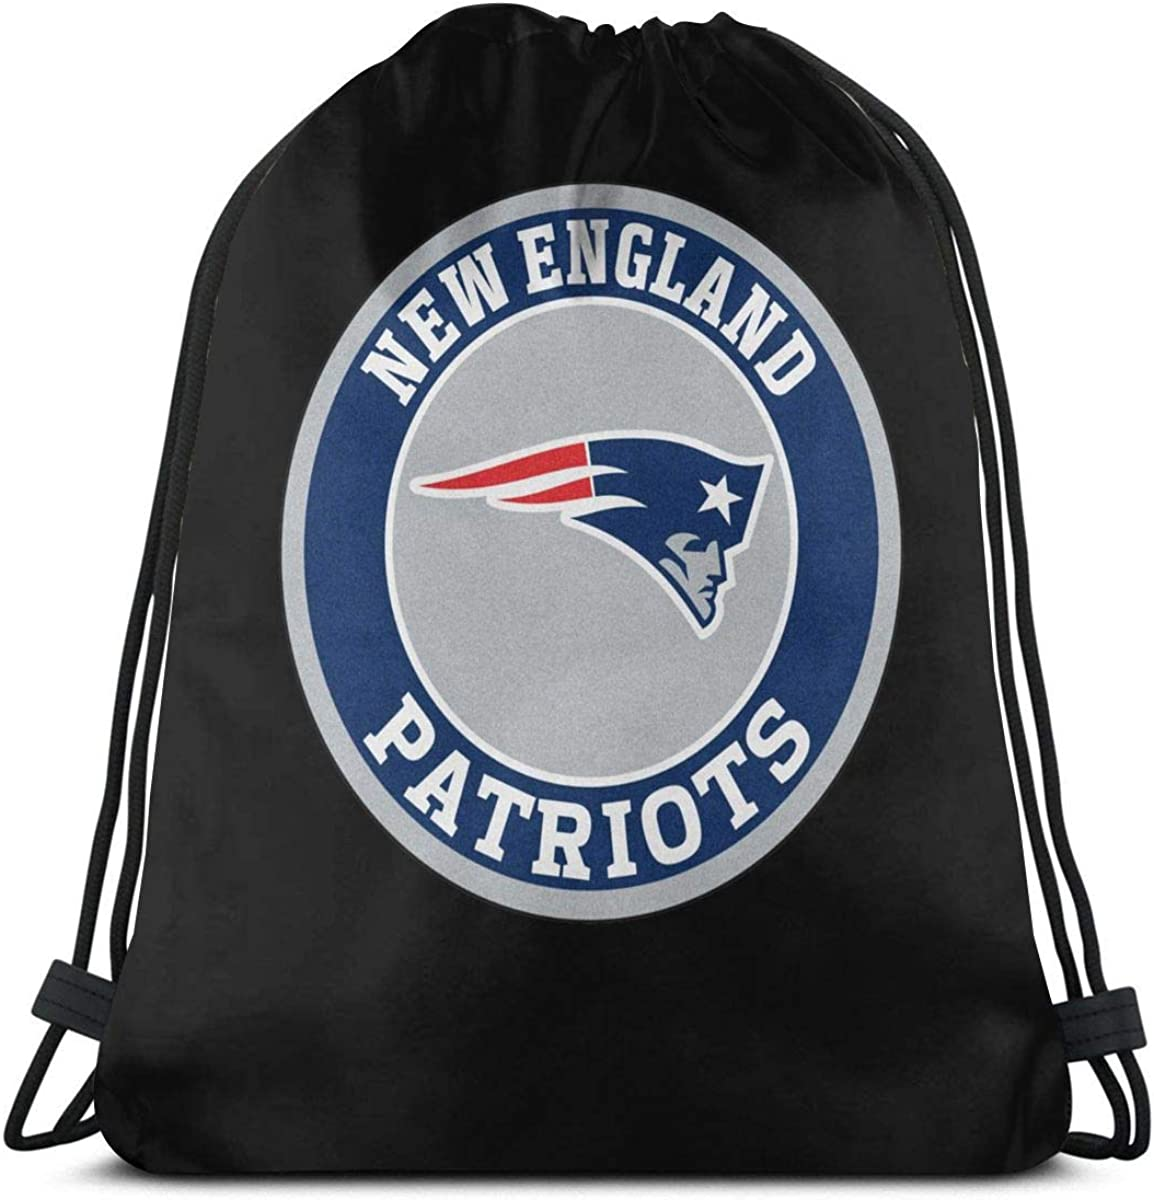 Griffithnelle Graphic Travel Hiking Backpack New England Patriots Drawstring Bags Gym Bag